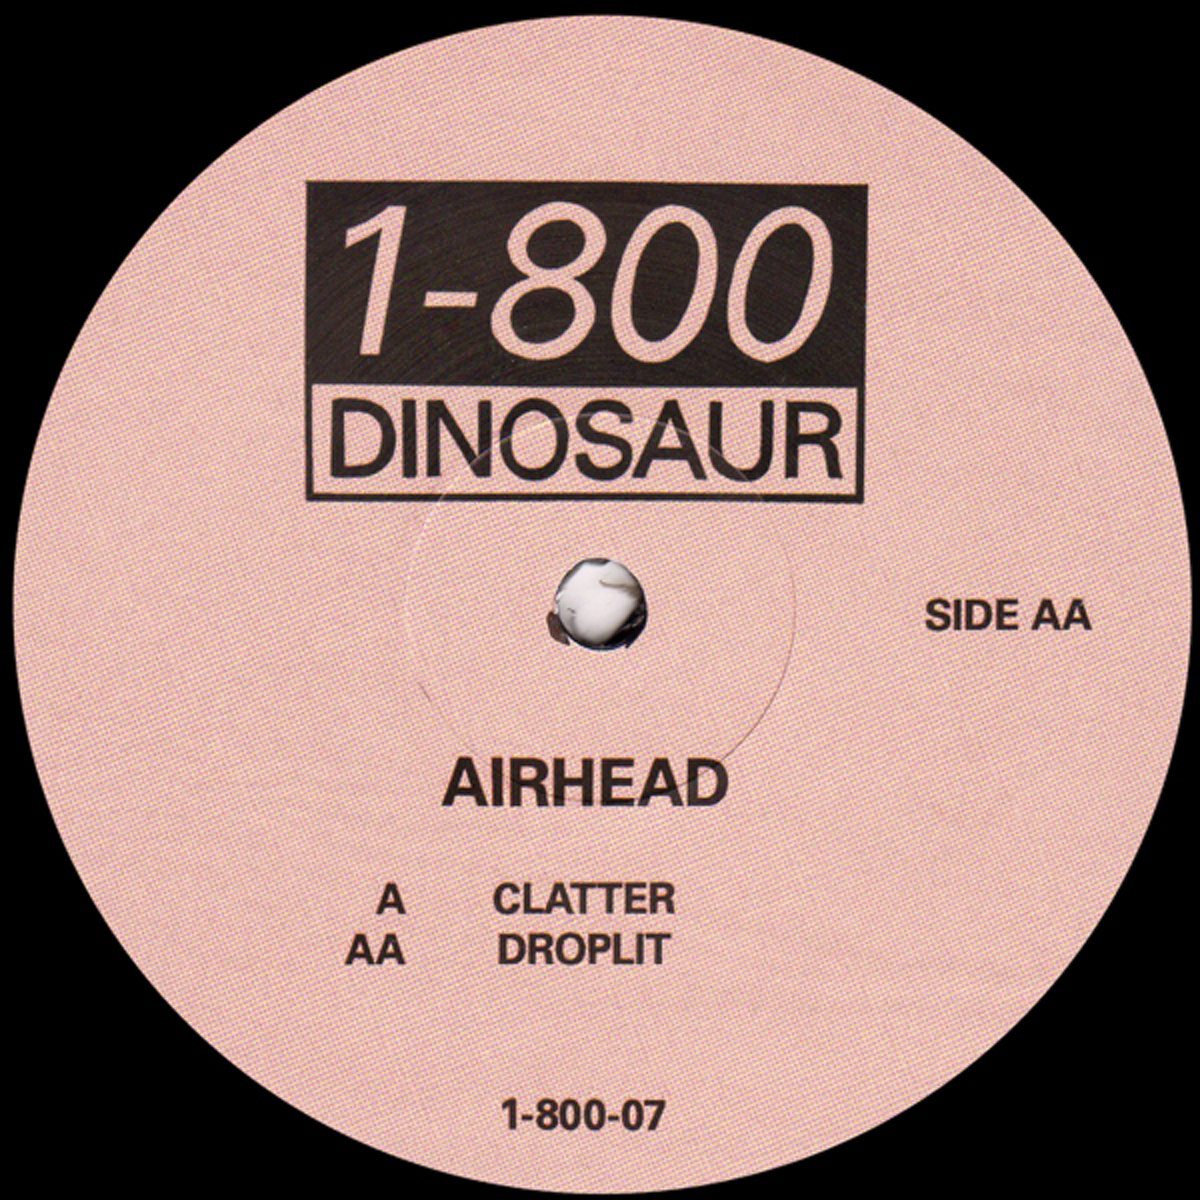 """Airhead returns to 1-800 Dinosaur with new 12"""" Clatter"""